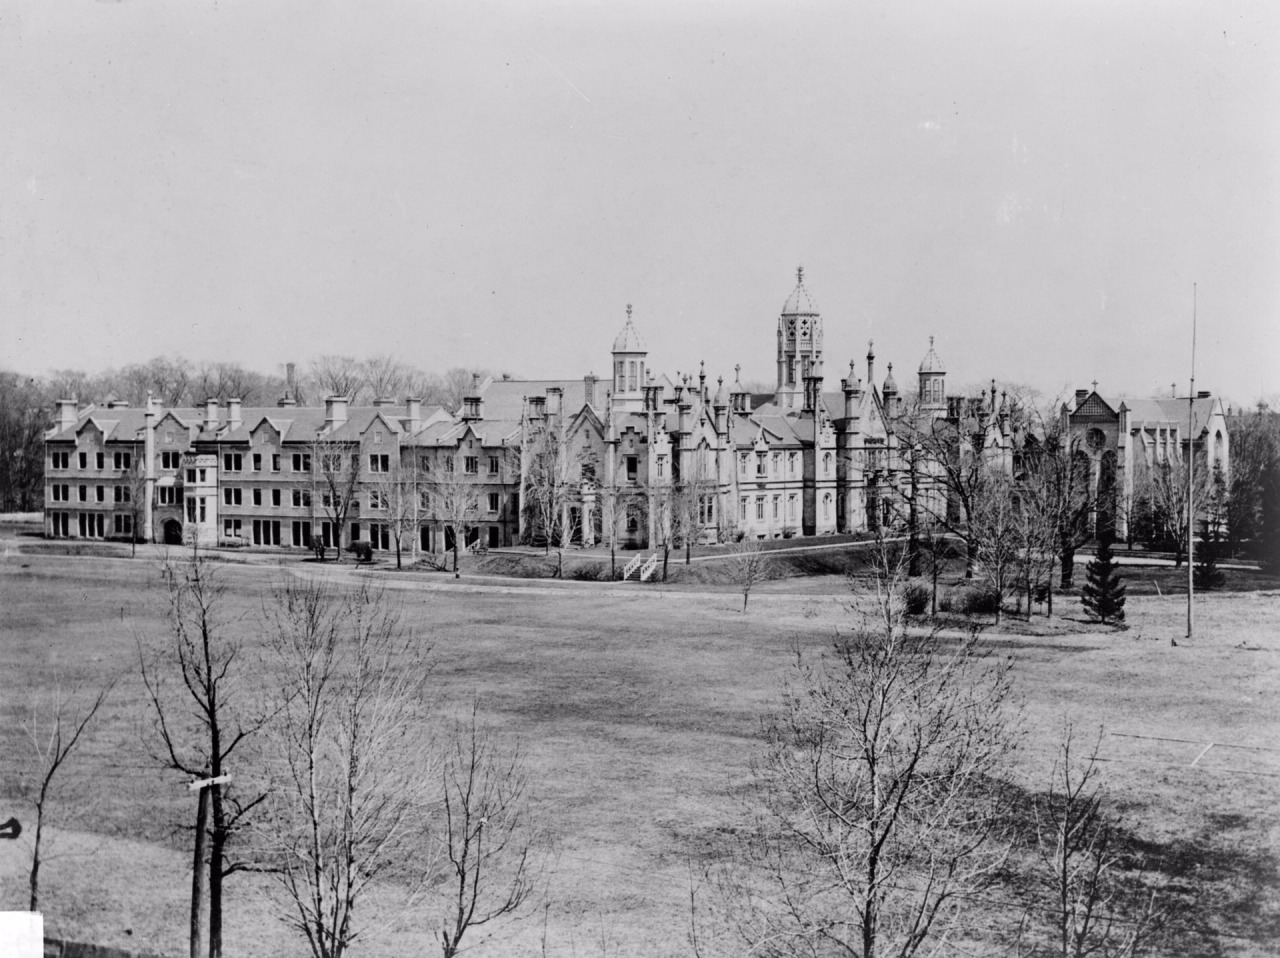 "fuckyeahtoronto:  Kivas Tully's original Trinity College, 1890.  ""On October 1, 1904, Trinity became part of the University of Toronto and relinquished to the university its authority to grant degrees in subjects other than theology. It became clear that the relocation of Trinity closer to the university was necessary, and the college abandoned plans for a northward expansion at its Queen Street site. The college acquired its present property near Queen's Park at the university grounds in 1913, but construction of the new college buildings, modeled after the original buildings by Kivas Tully, was not completed until 1925 due to World War I. The former site of the college became Trinity Bellwoods Park.""  I wish Trin was still on Queen west!"